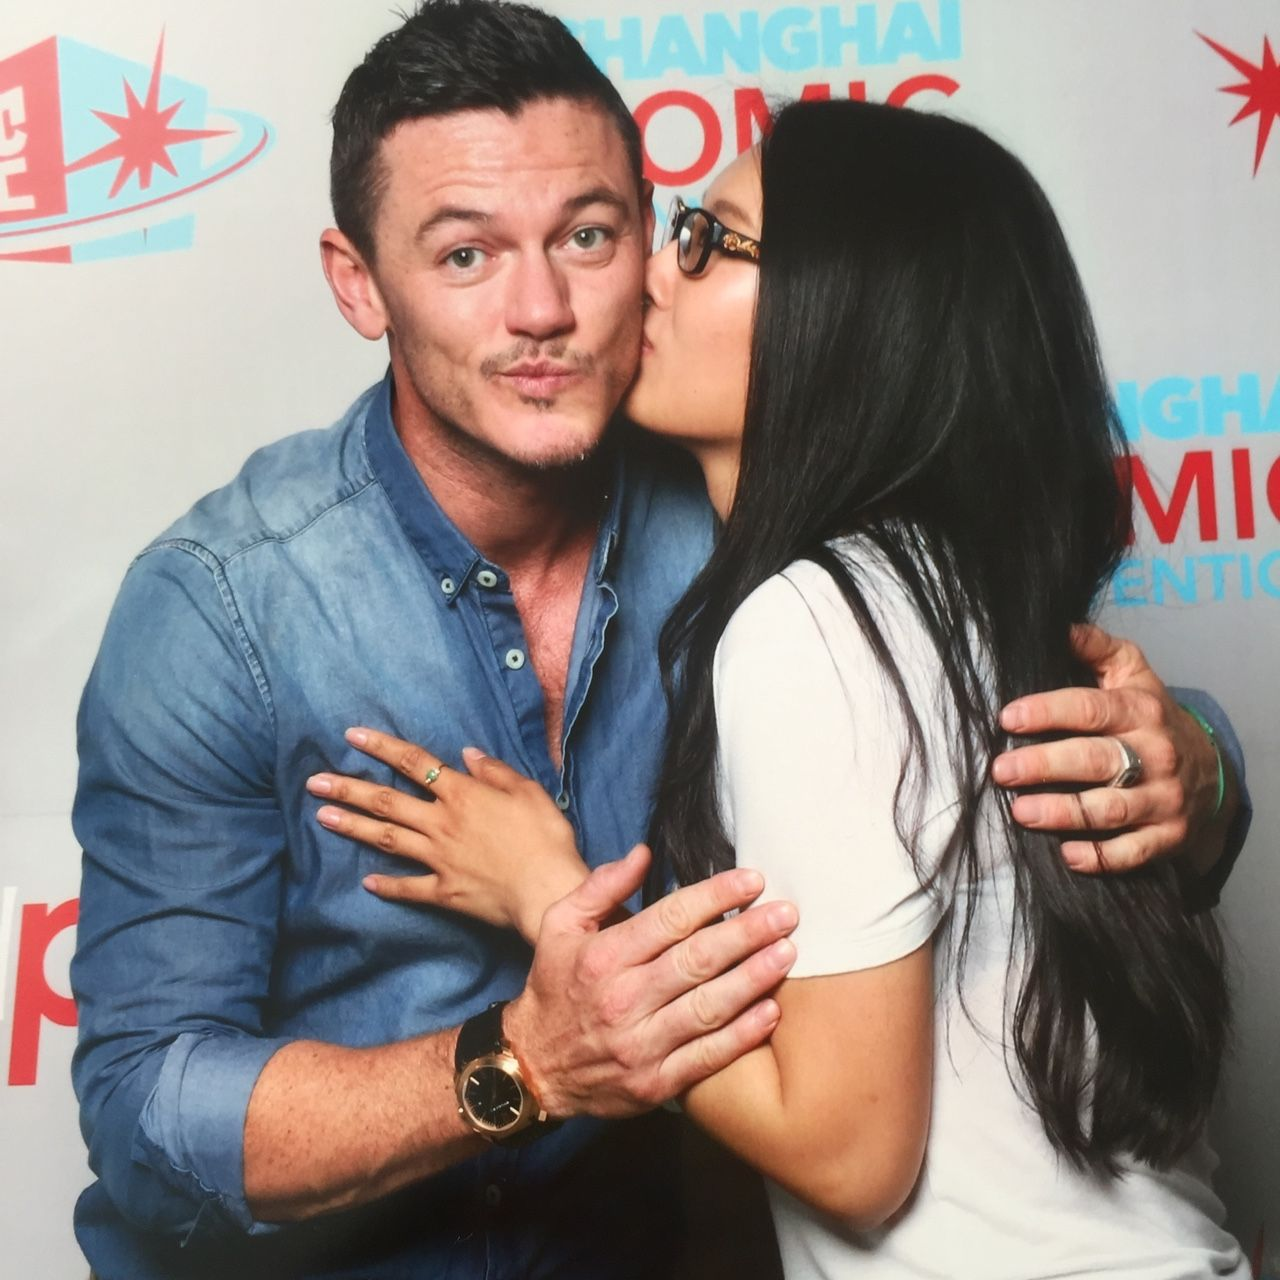 Luke Evans with the luckiest girl in the world.